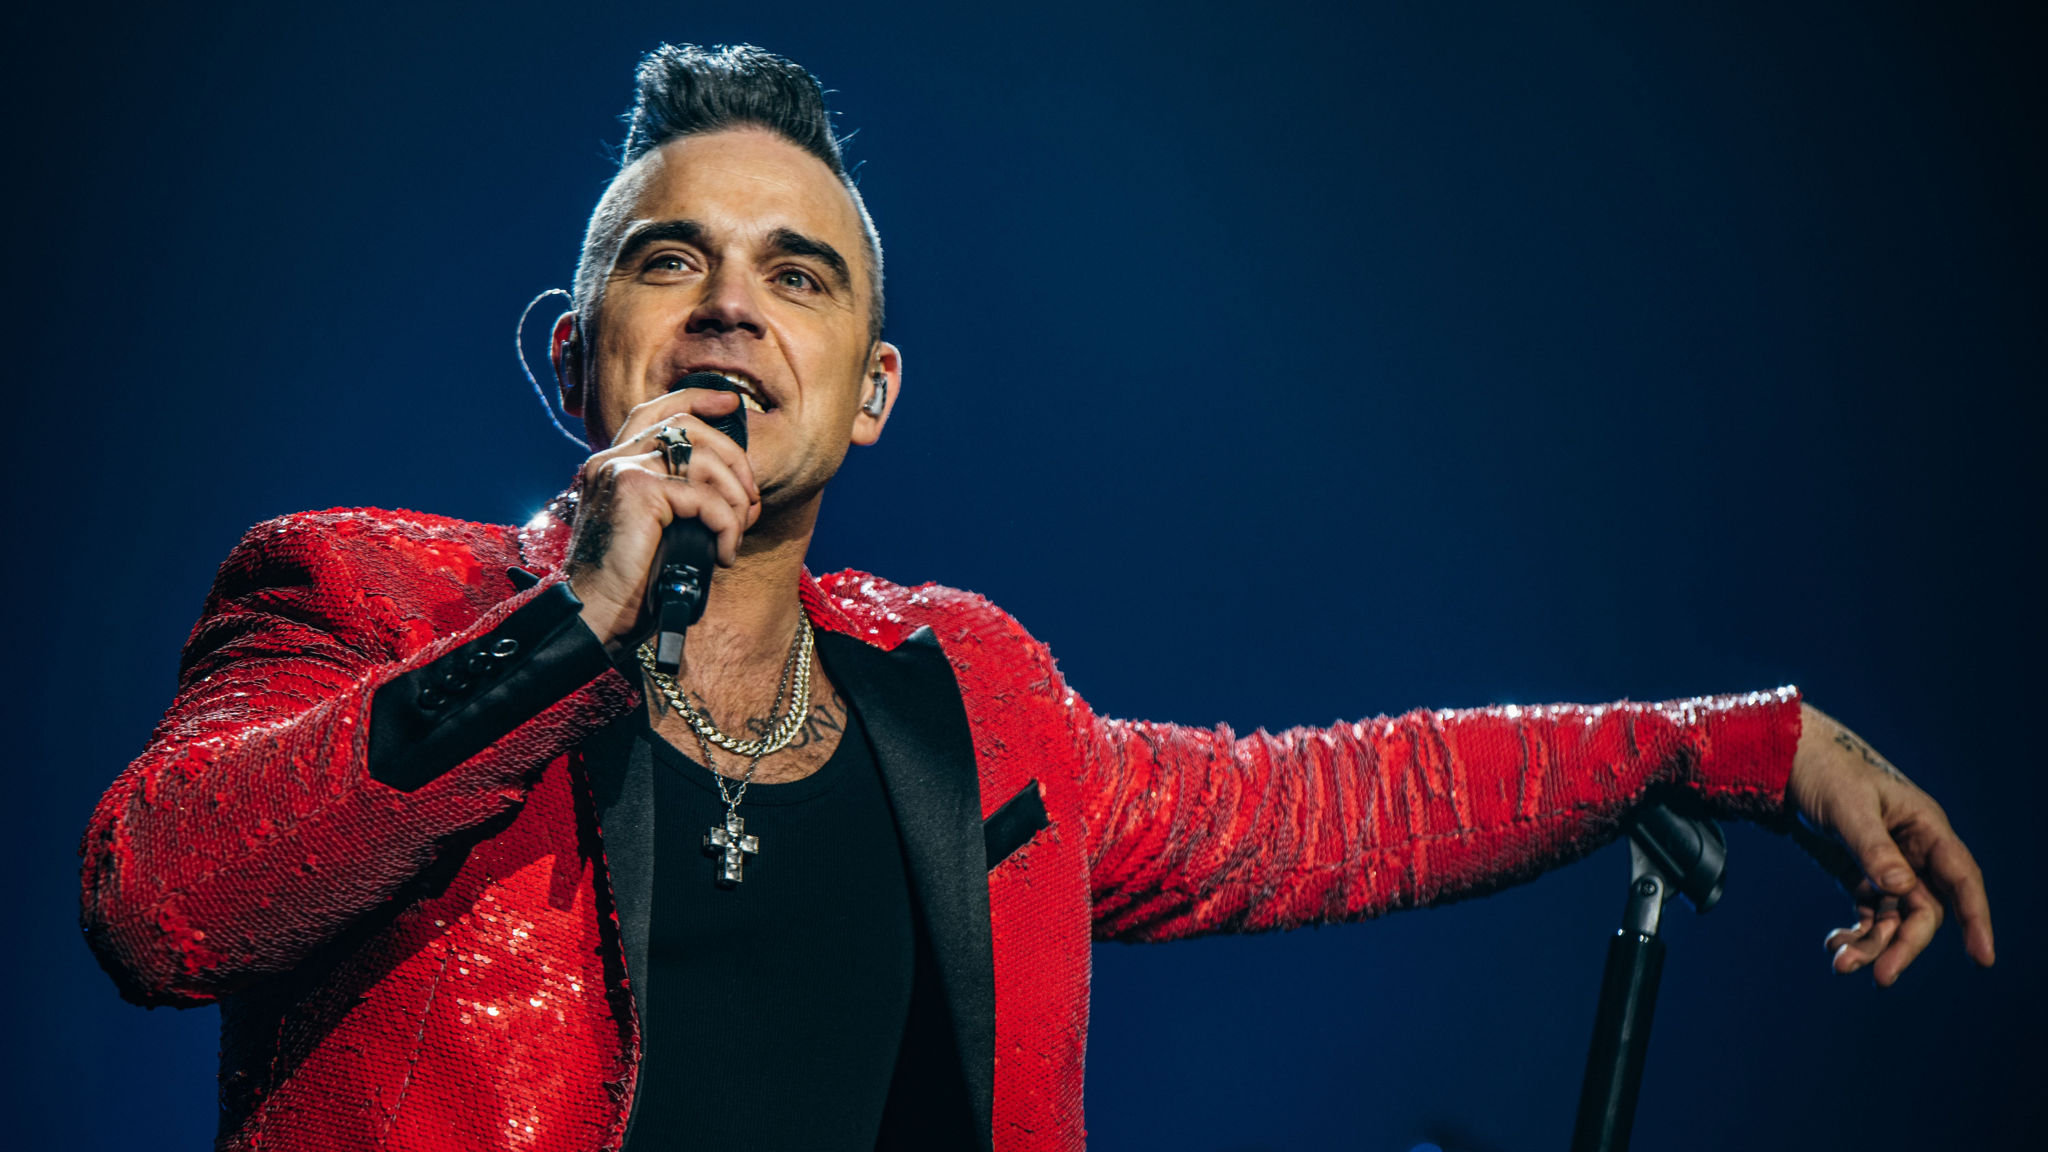 Robbie Williams Net Worth, Lifestyle, Biography, Wiki, Family And More